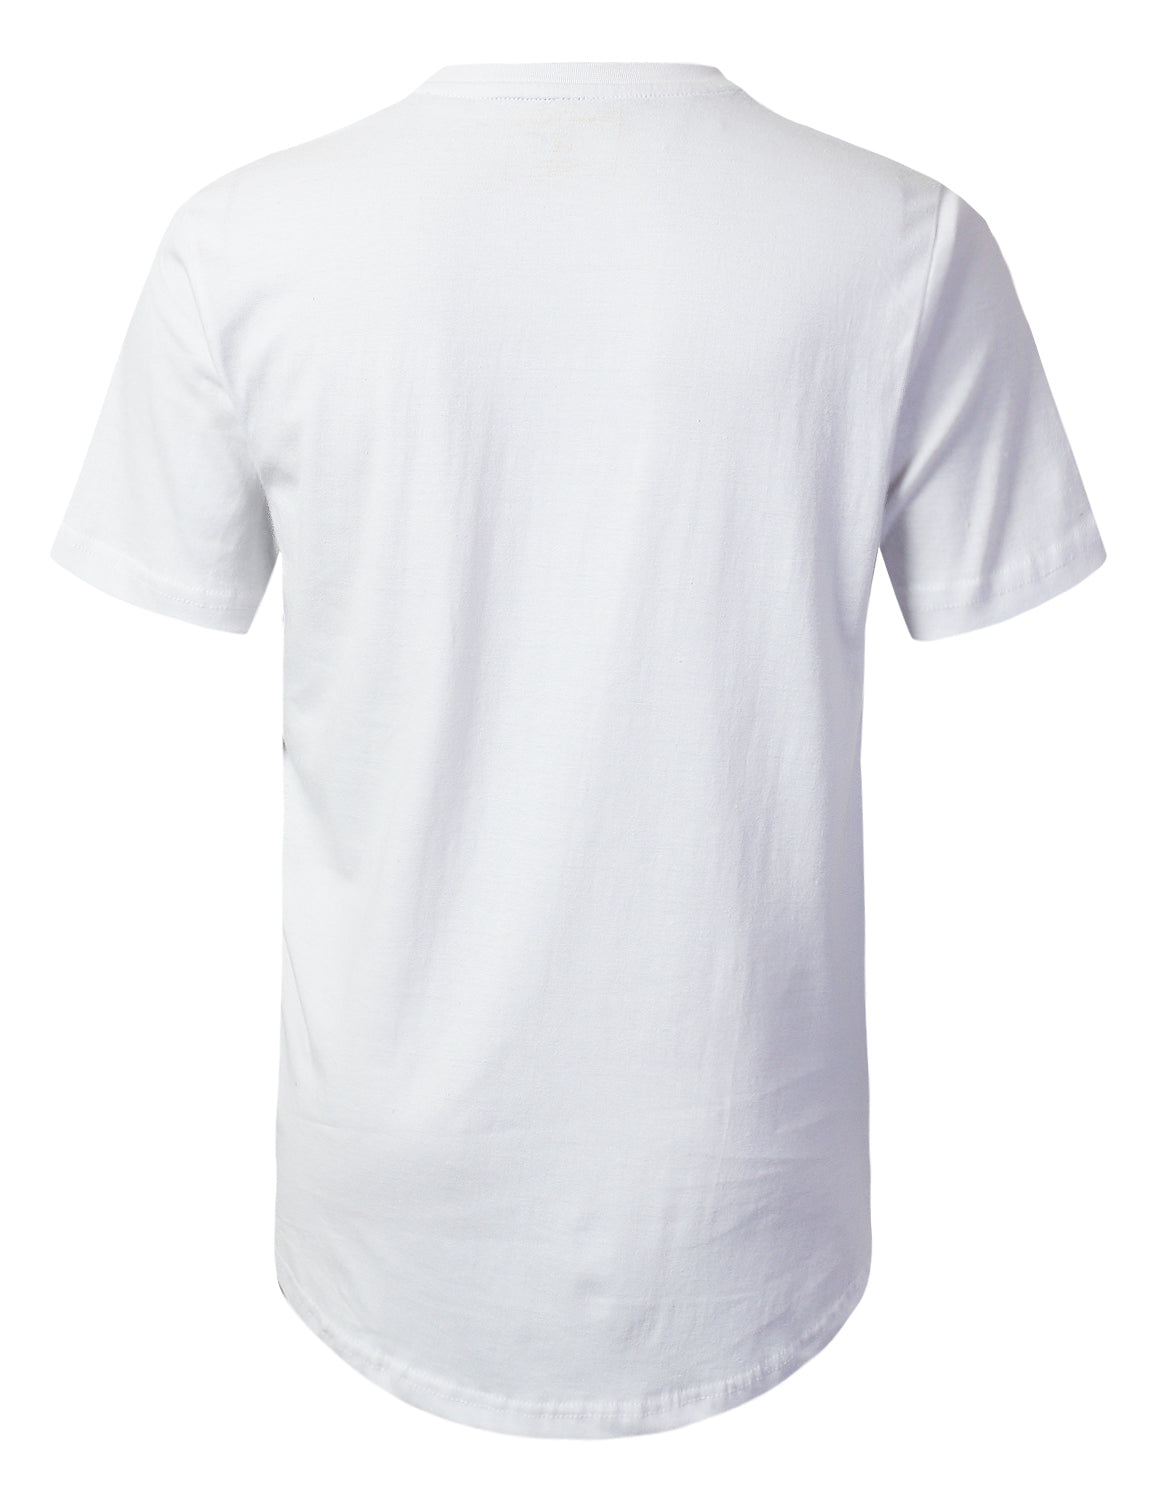 WHITE Legacy 23 Printed T-shirt - URBANCREWS